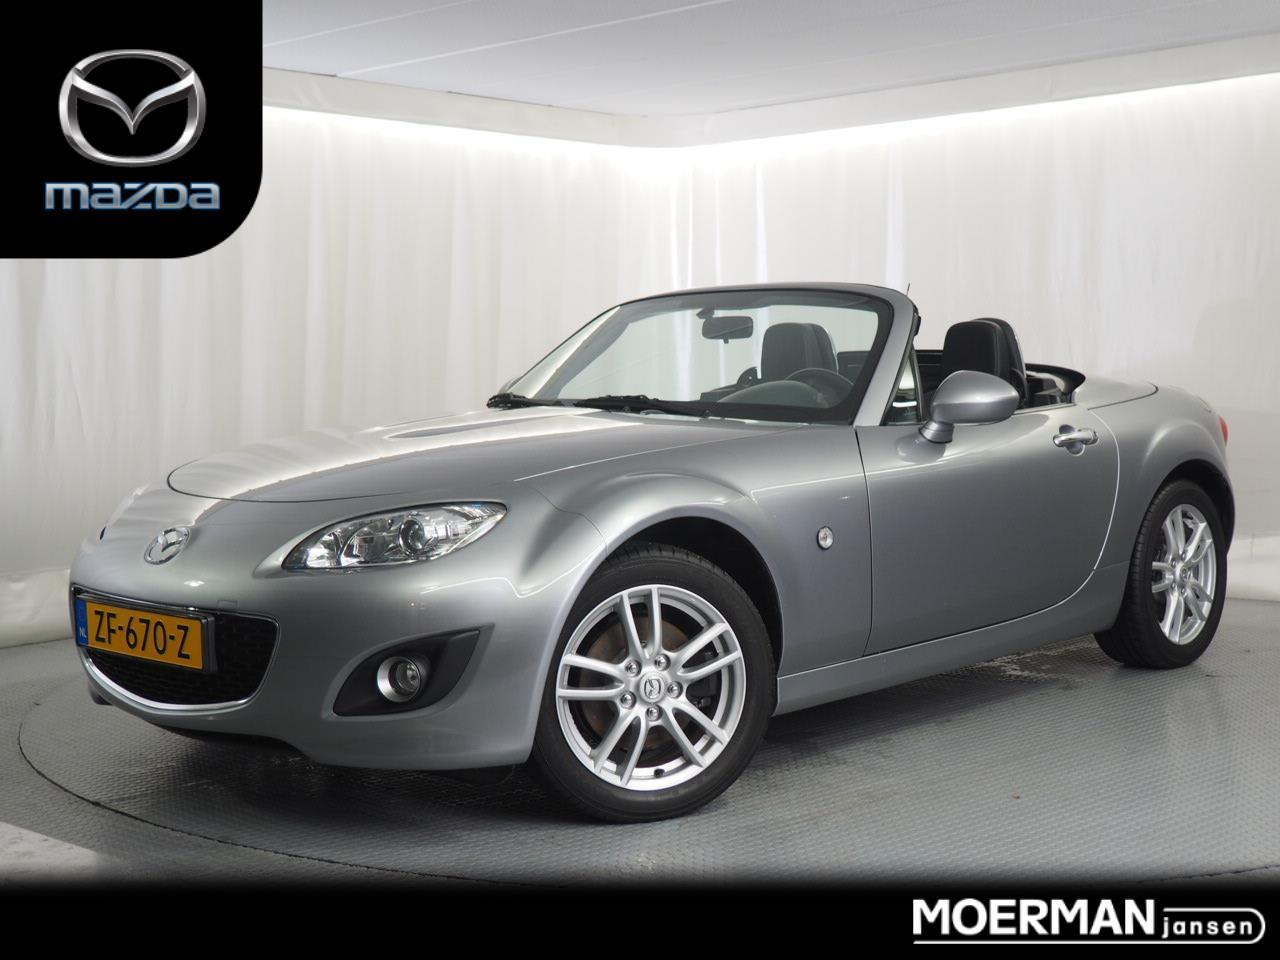 Mazda Mx-5 Roadster coupé 1.8 executive athletic / recaro interieur / 57.000km / electr. hardtop / bose installatie / voll. historie